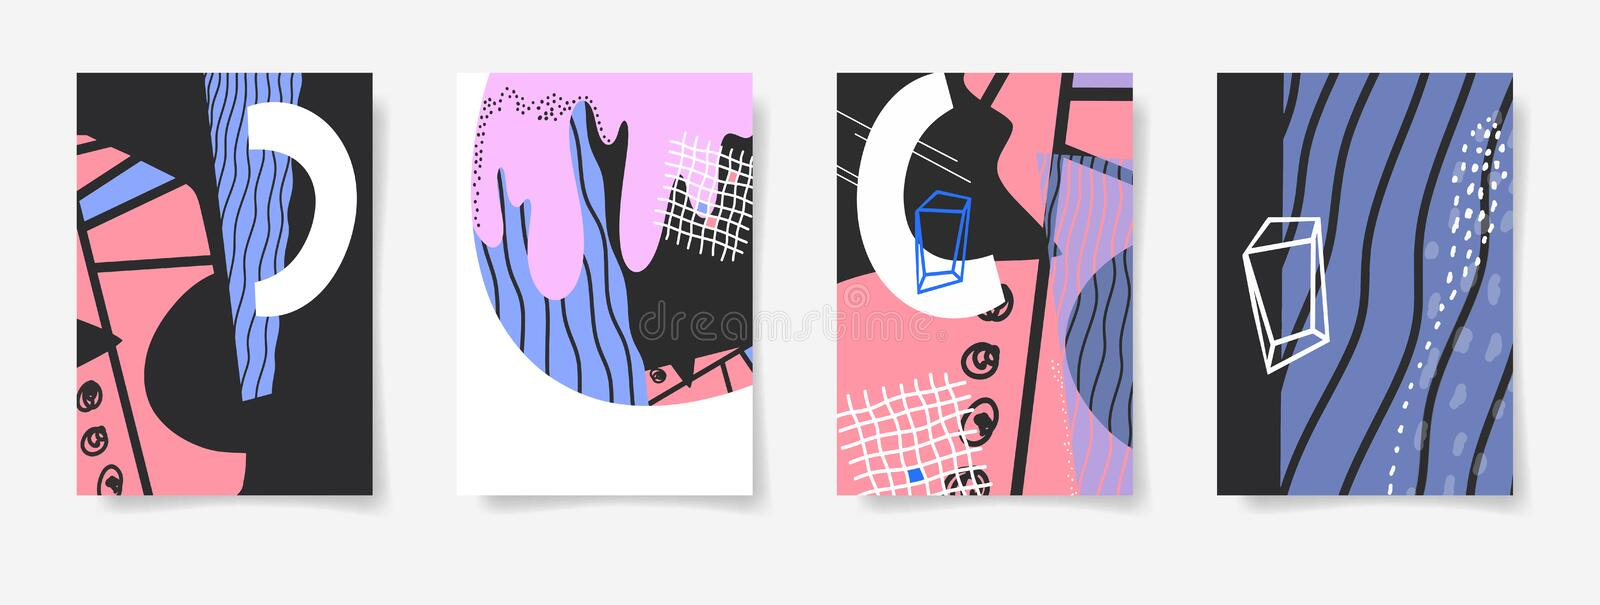 Set of four trendy abstract background, minimal covers design royalty free illustration